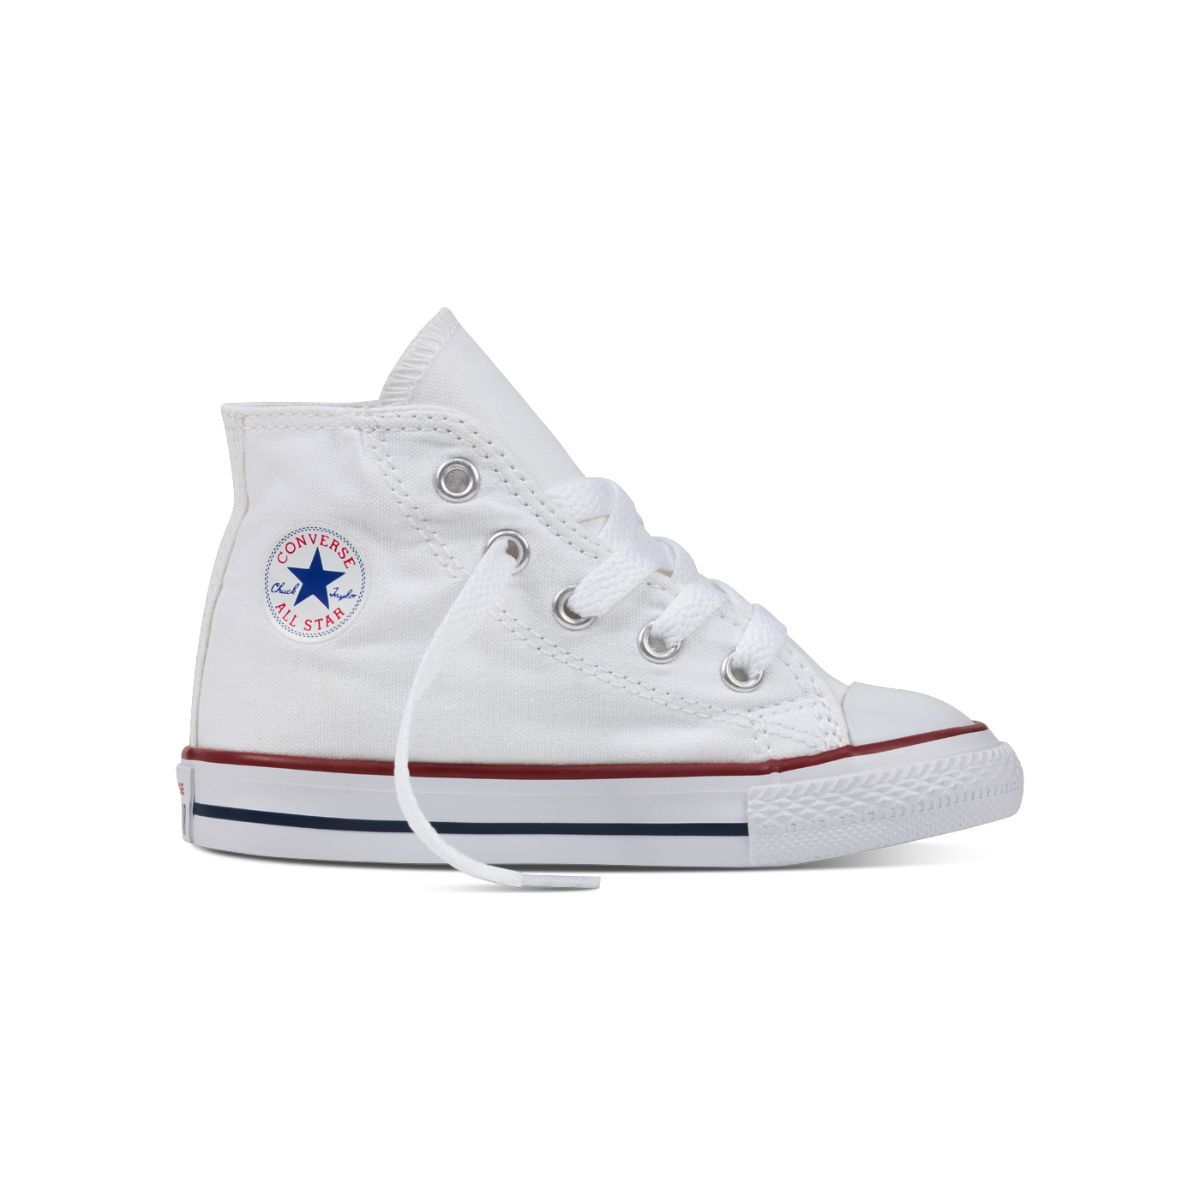 Chuck Taylor All Star White High Top